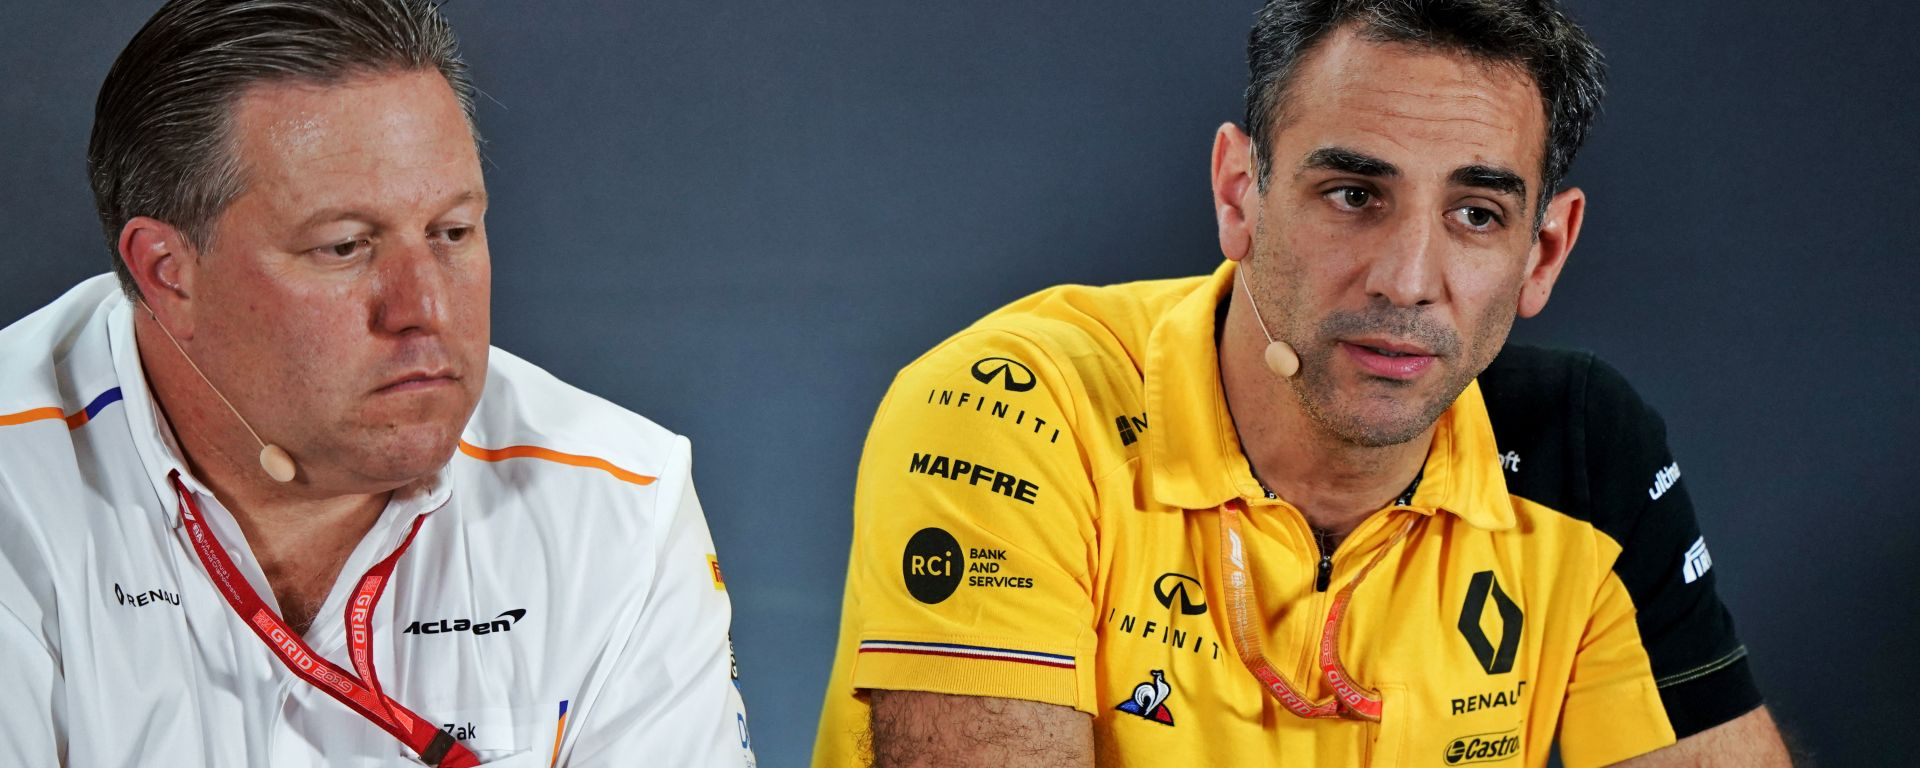 F1 2019: i team principal Zak Brown (McLaren) e Cyril Abiteboul (Renault)